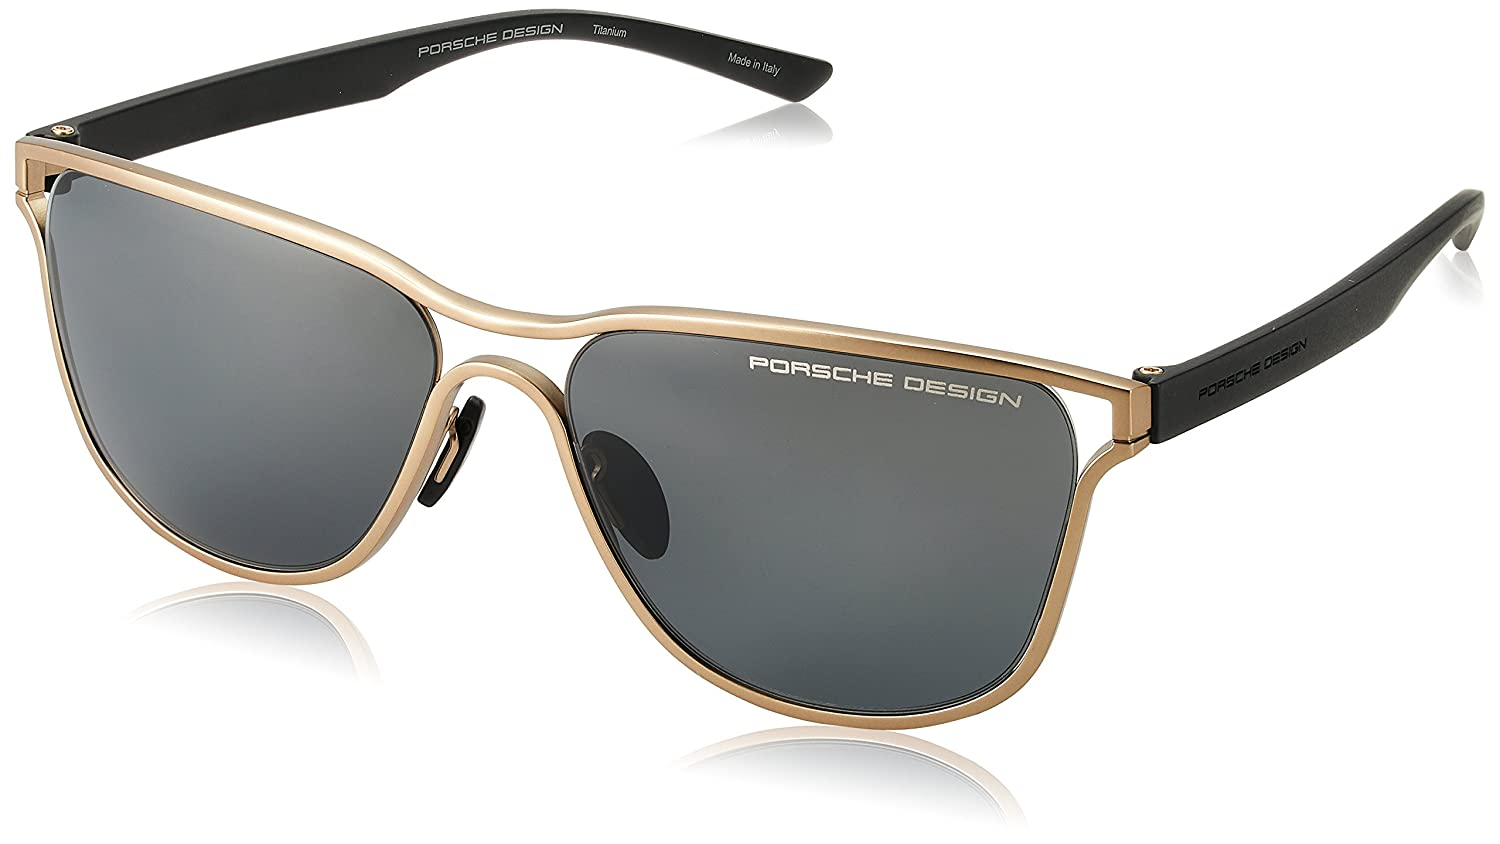 1ee5e7e7b0 Amazon.com  Porsche Design Men s P8647 P 8647 D Gold Square Sunglasses  58mm  Clothing